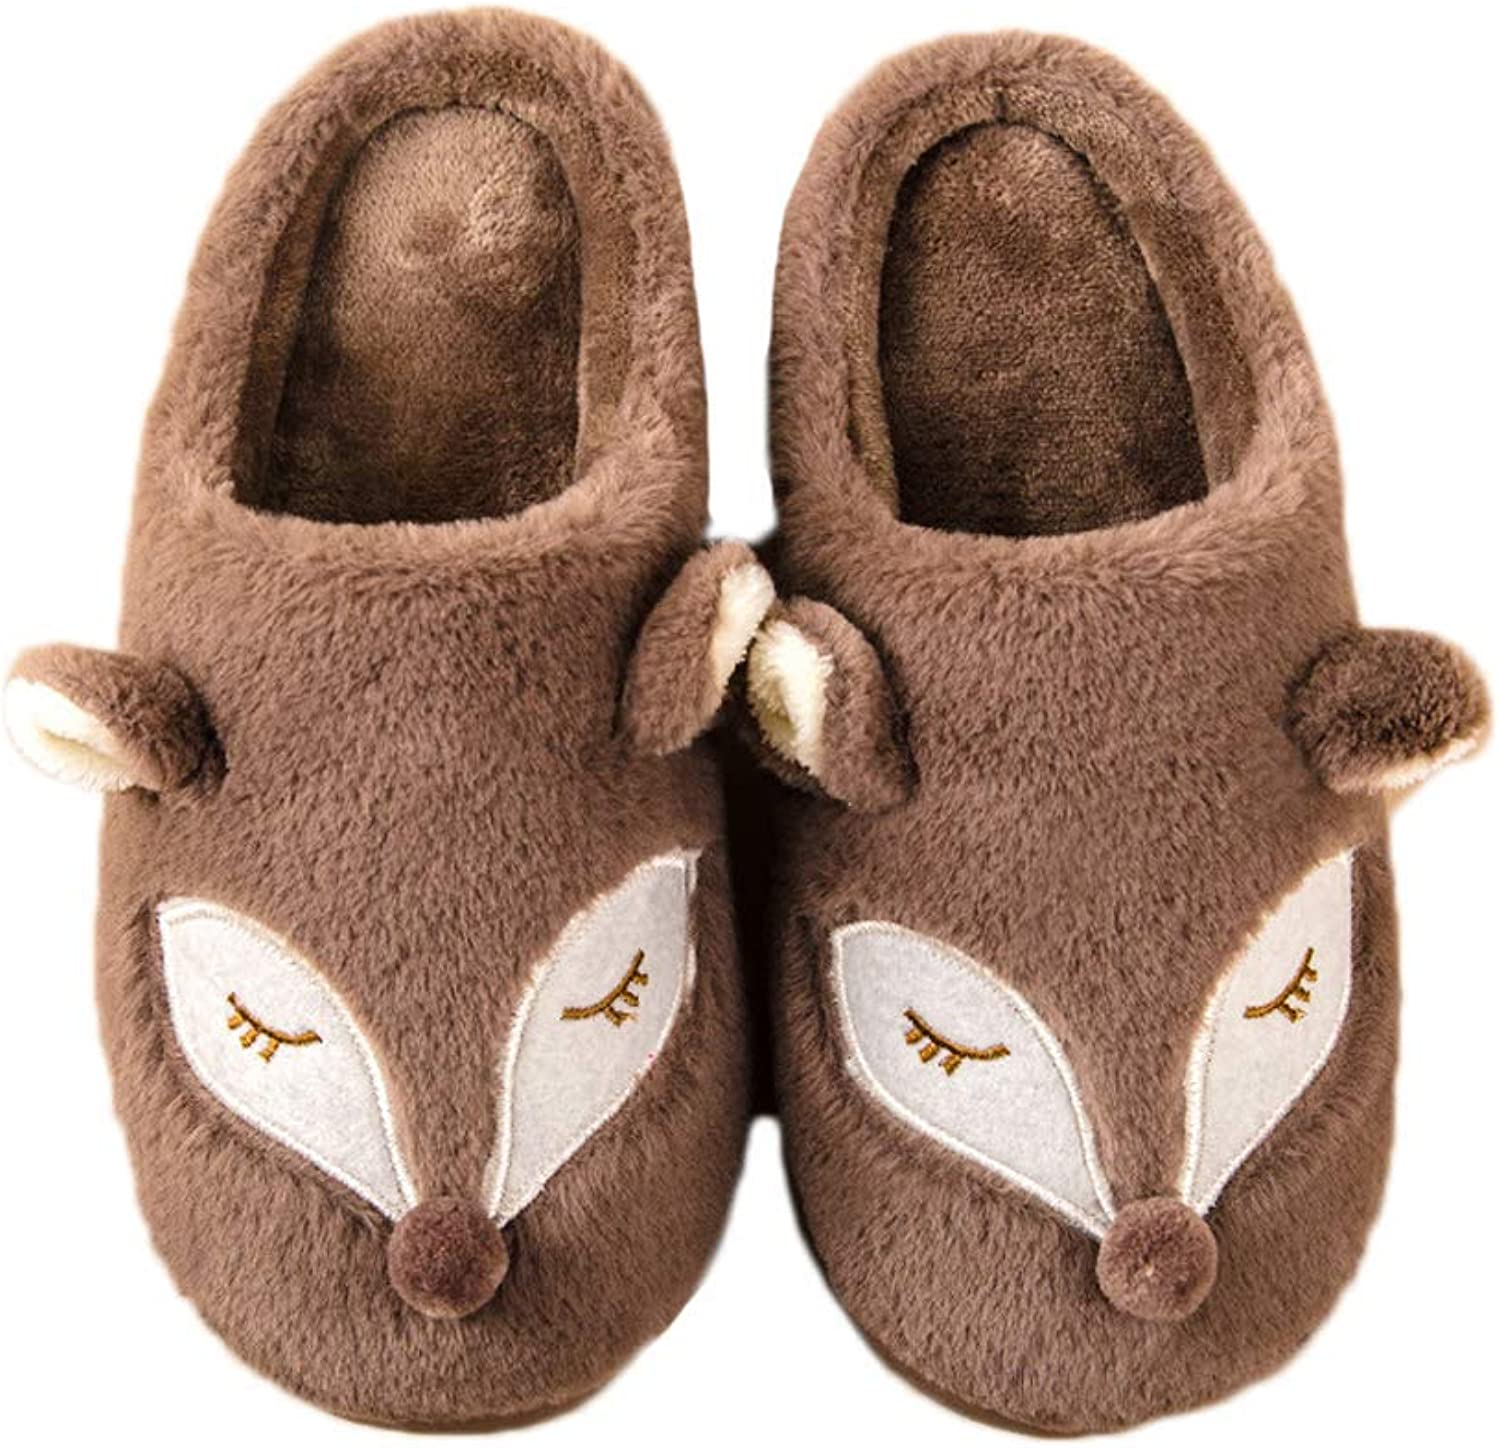 Techcity Slippers Men Women Cute Animal Comfy Memory Foam House shoes w Indoor & Outdoor Anti-Skid Sole Arch Support